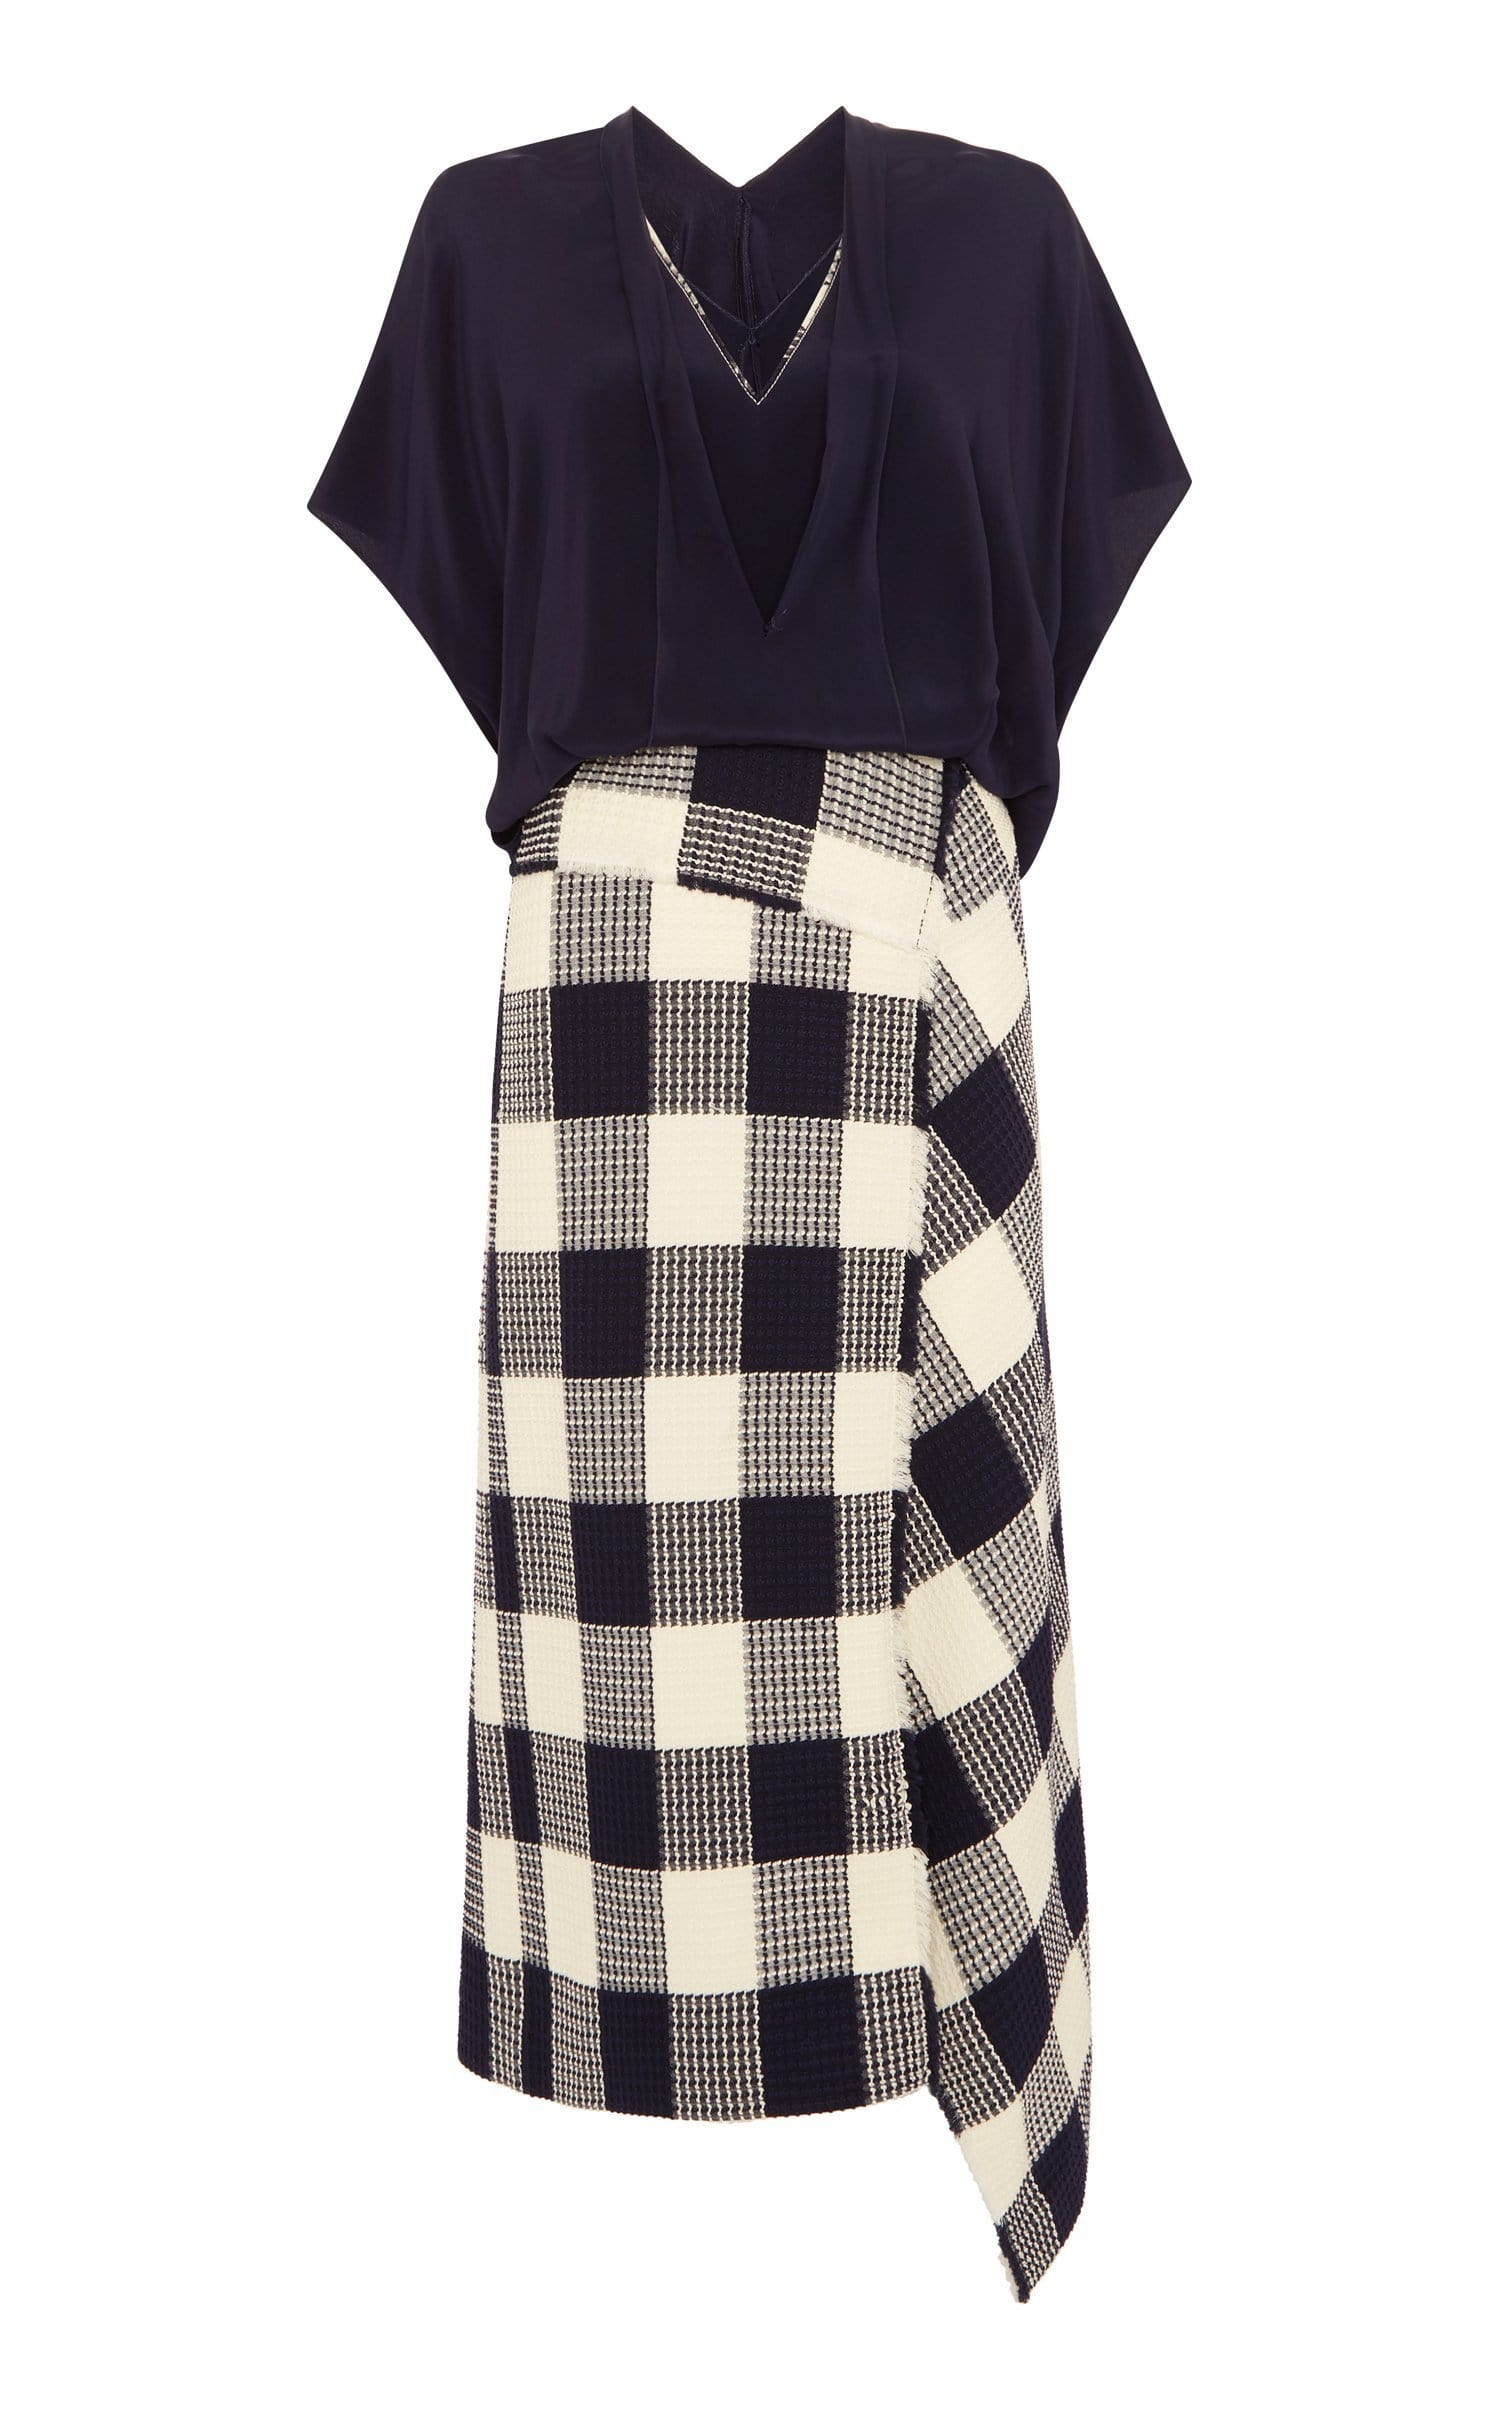 Kenna Dress In Navy/White from Roland Mouret